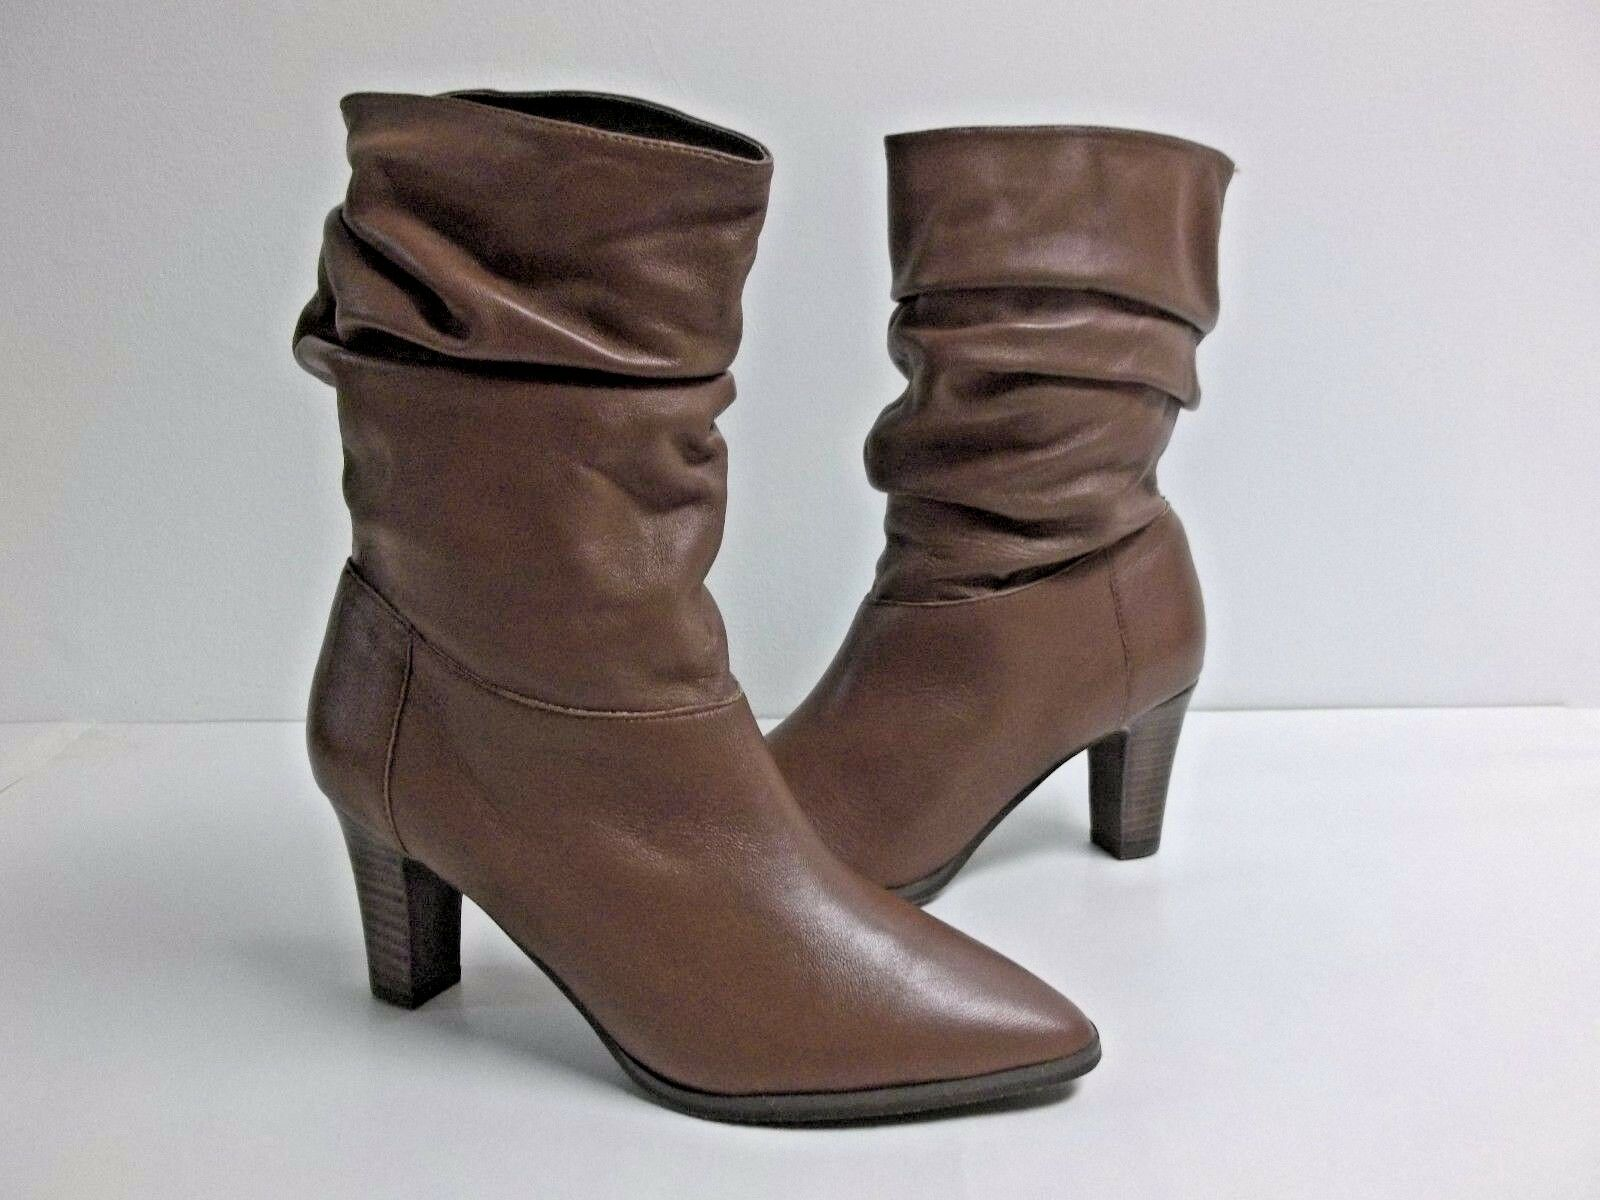 Adrianna Papell Size Calf 8 M NOELLE Brown Pelle Mid Calf Size Stivali New Donna Shoes 8749a2